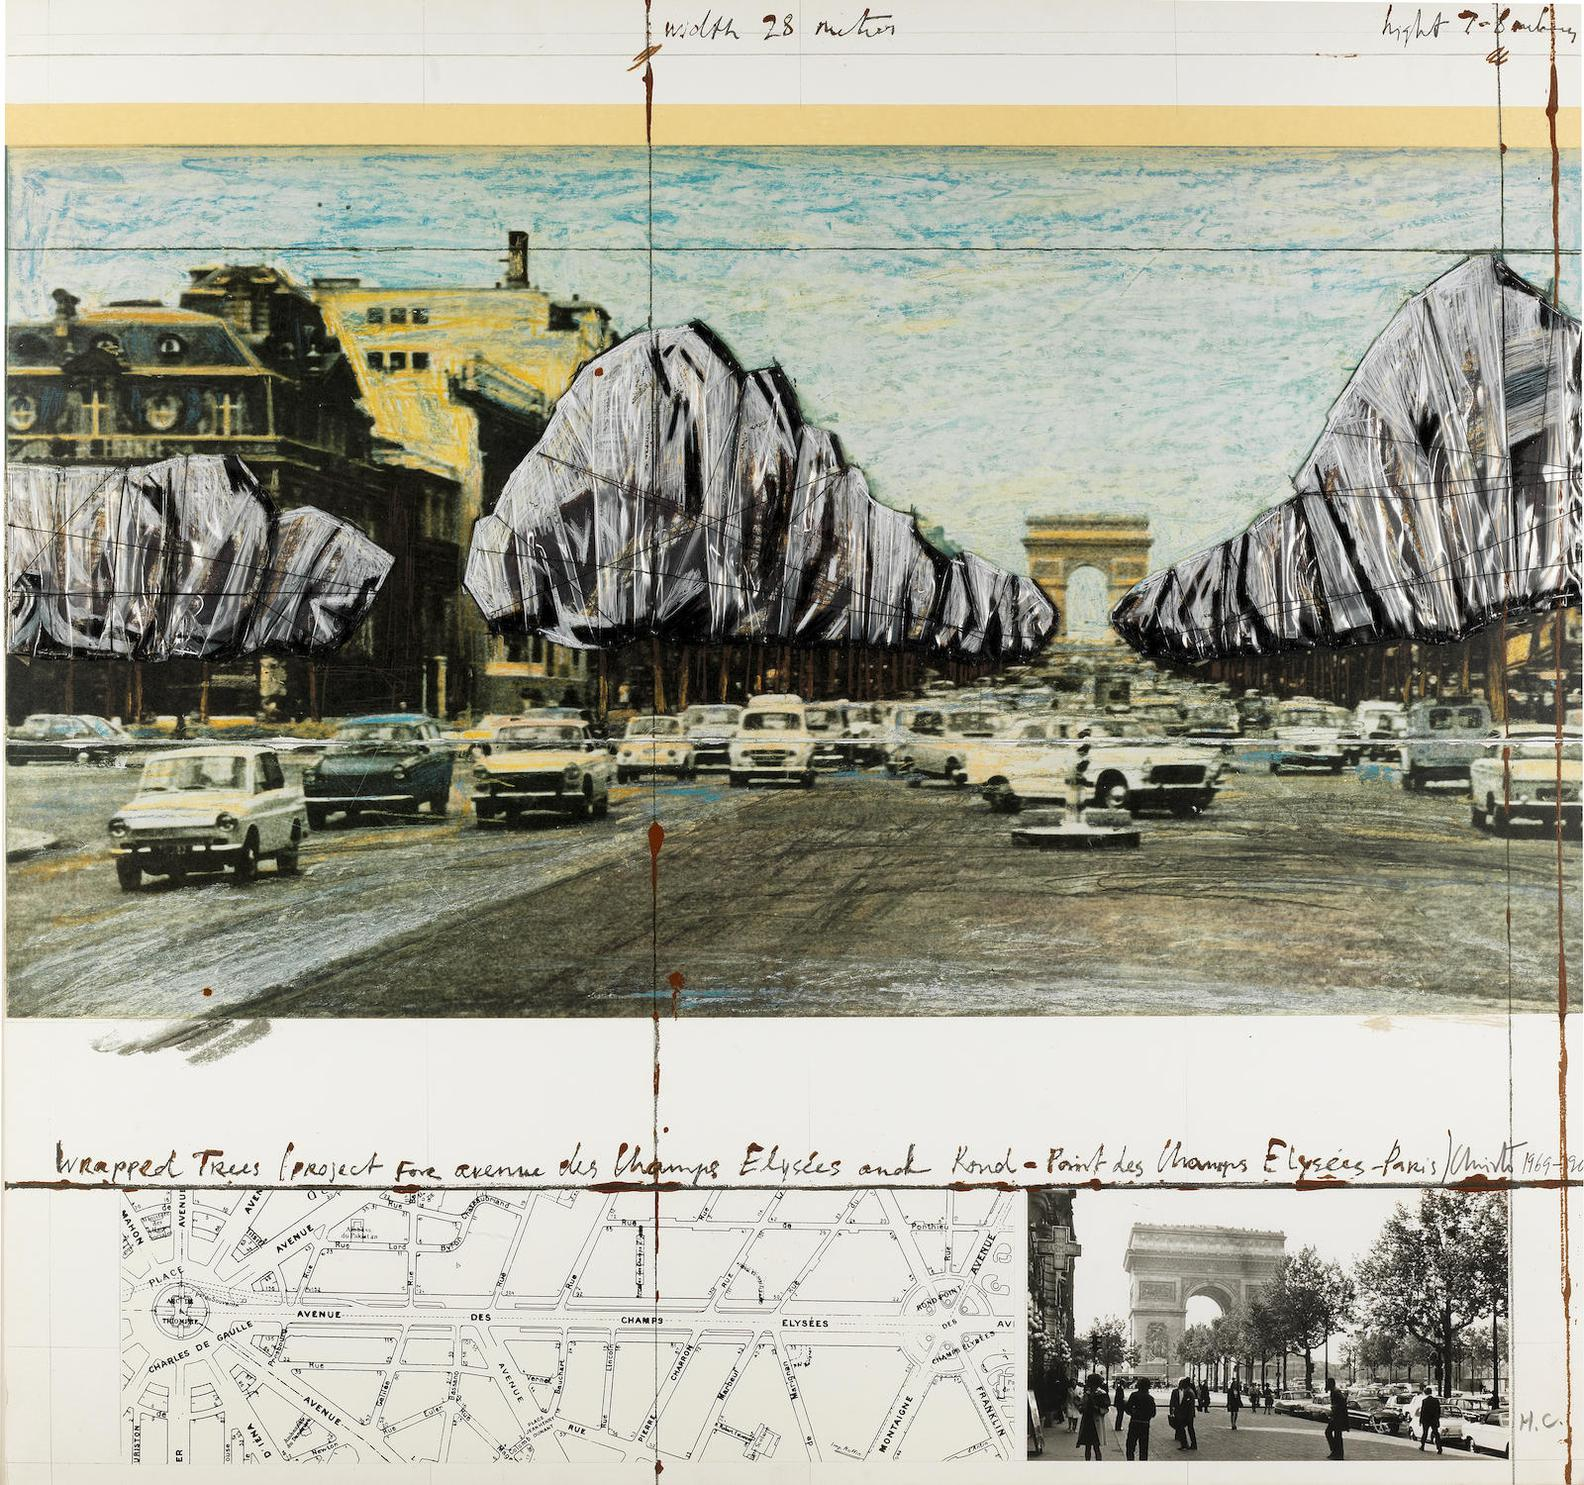 Christo and Jeanne-Claude-Wrapped Trees, Project For The Avenue Des Champs-Elysees, Paris (Schellmann 160)-1992